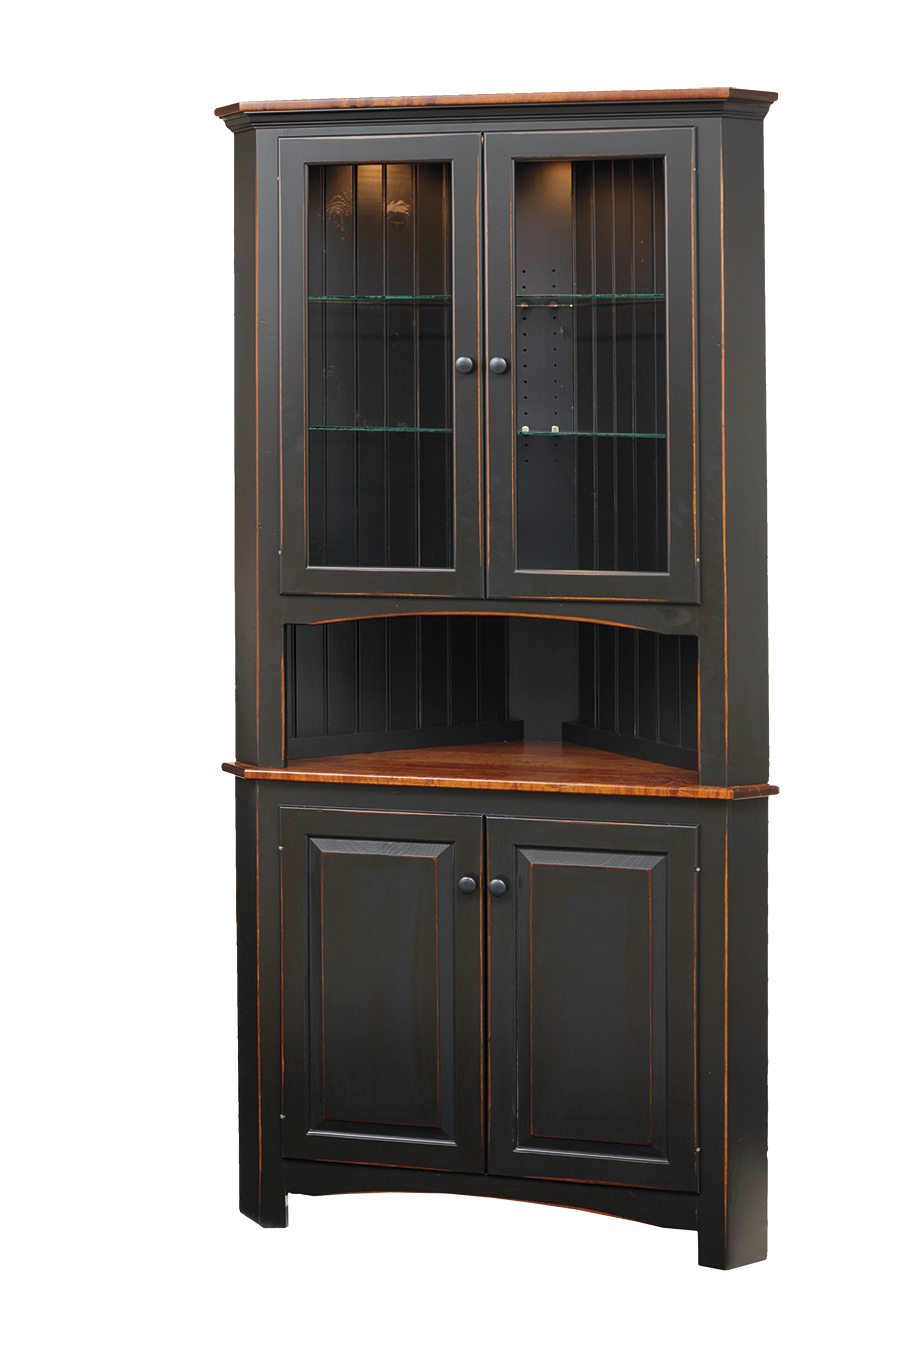 Shaker Corner Cabinet Peaceful Valley Amish Furniture